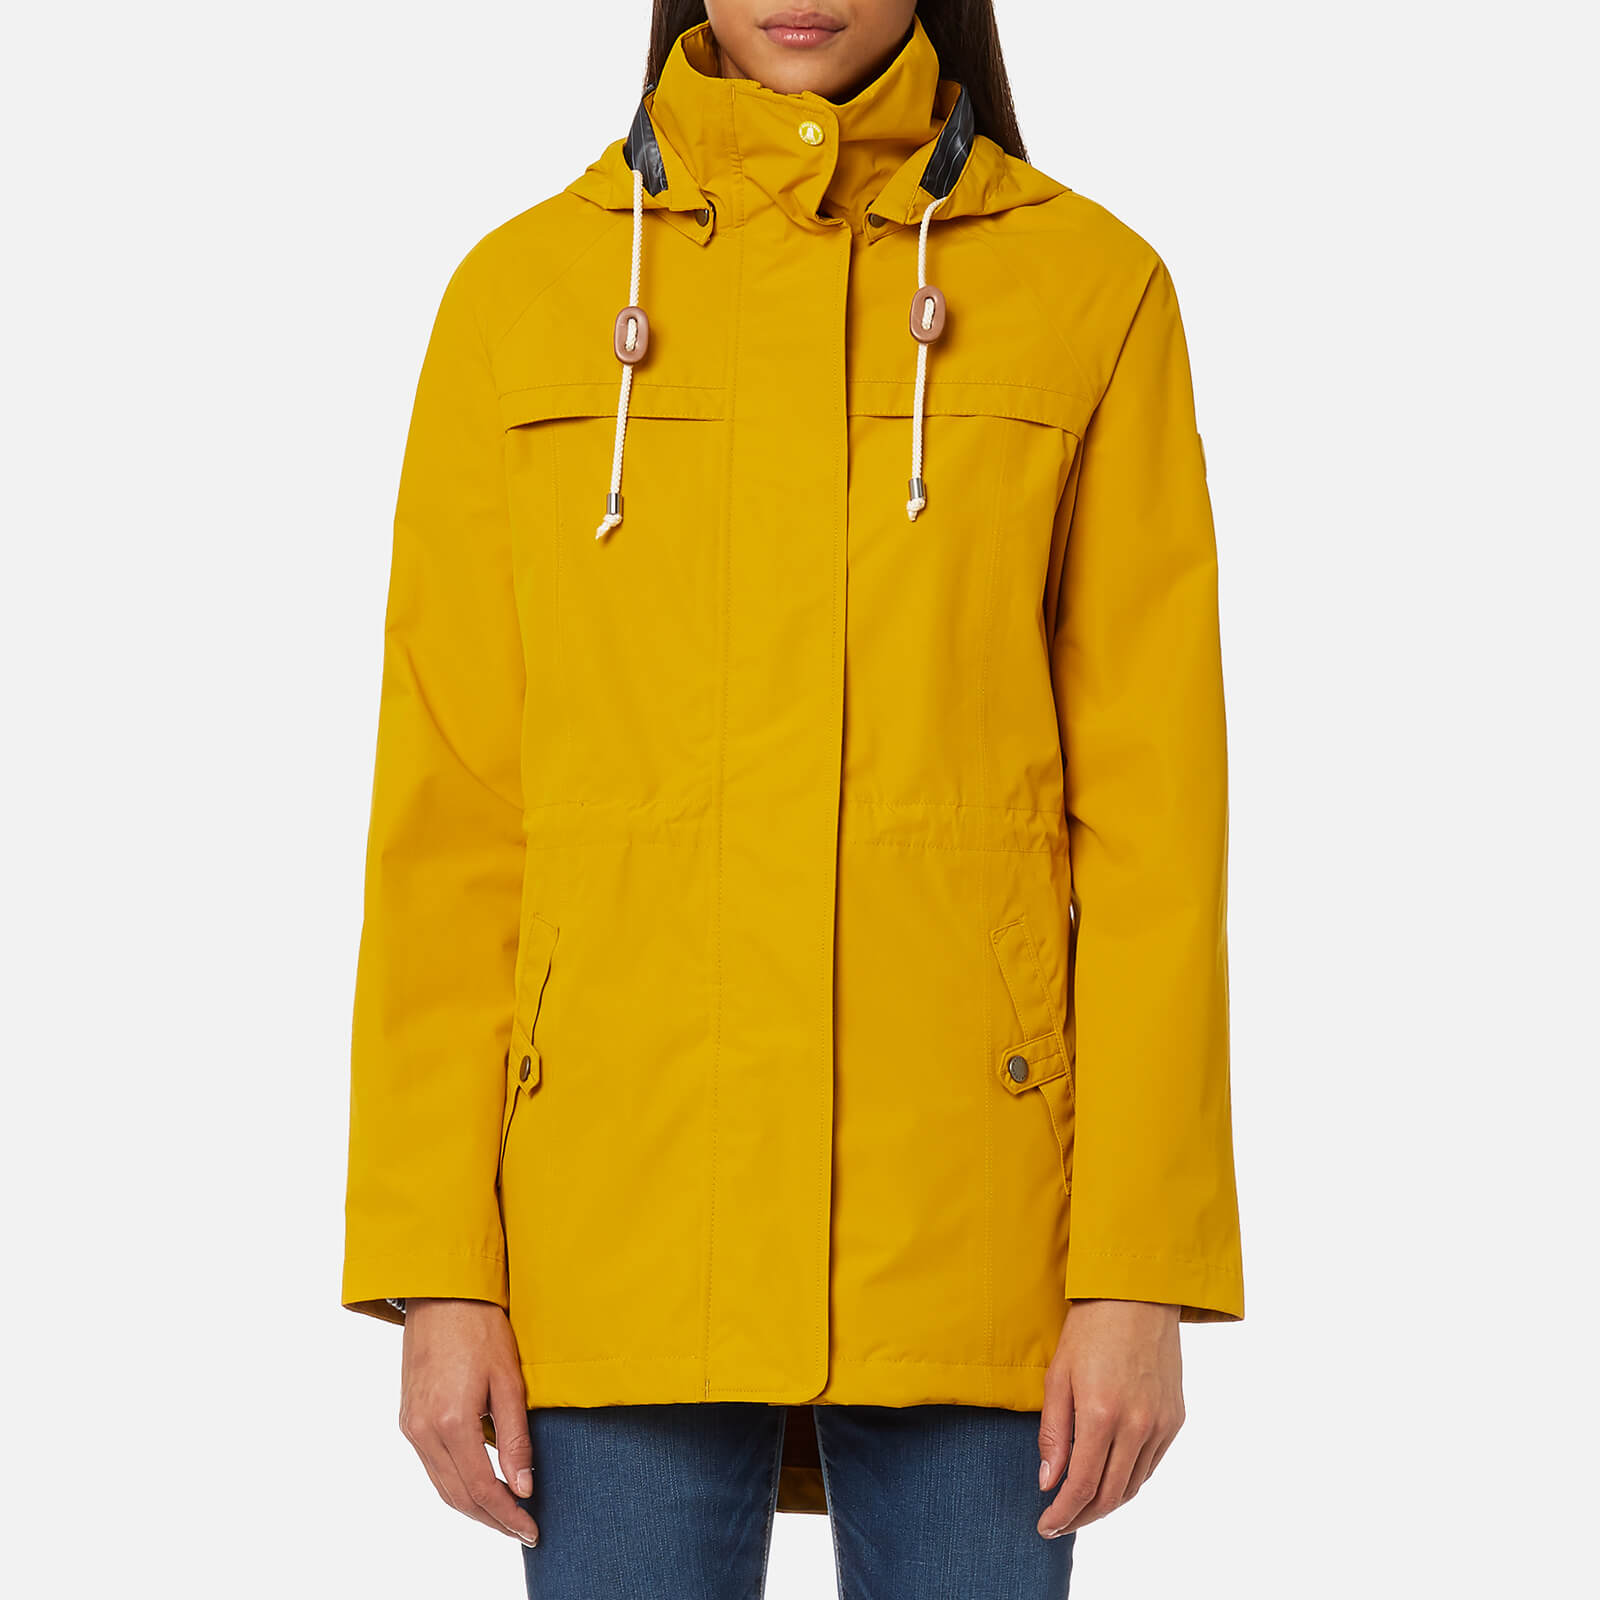 8244851056ae4 Barbour Women's Hanover Jacket - Canary Yellow - Free UK Delivery over £50